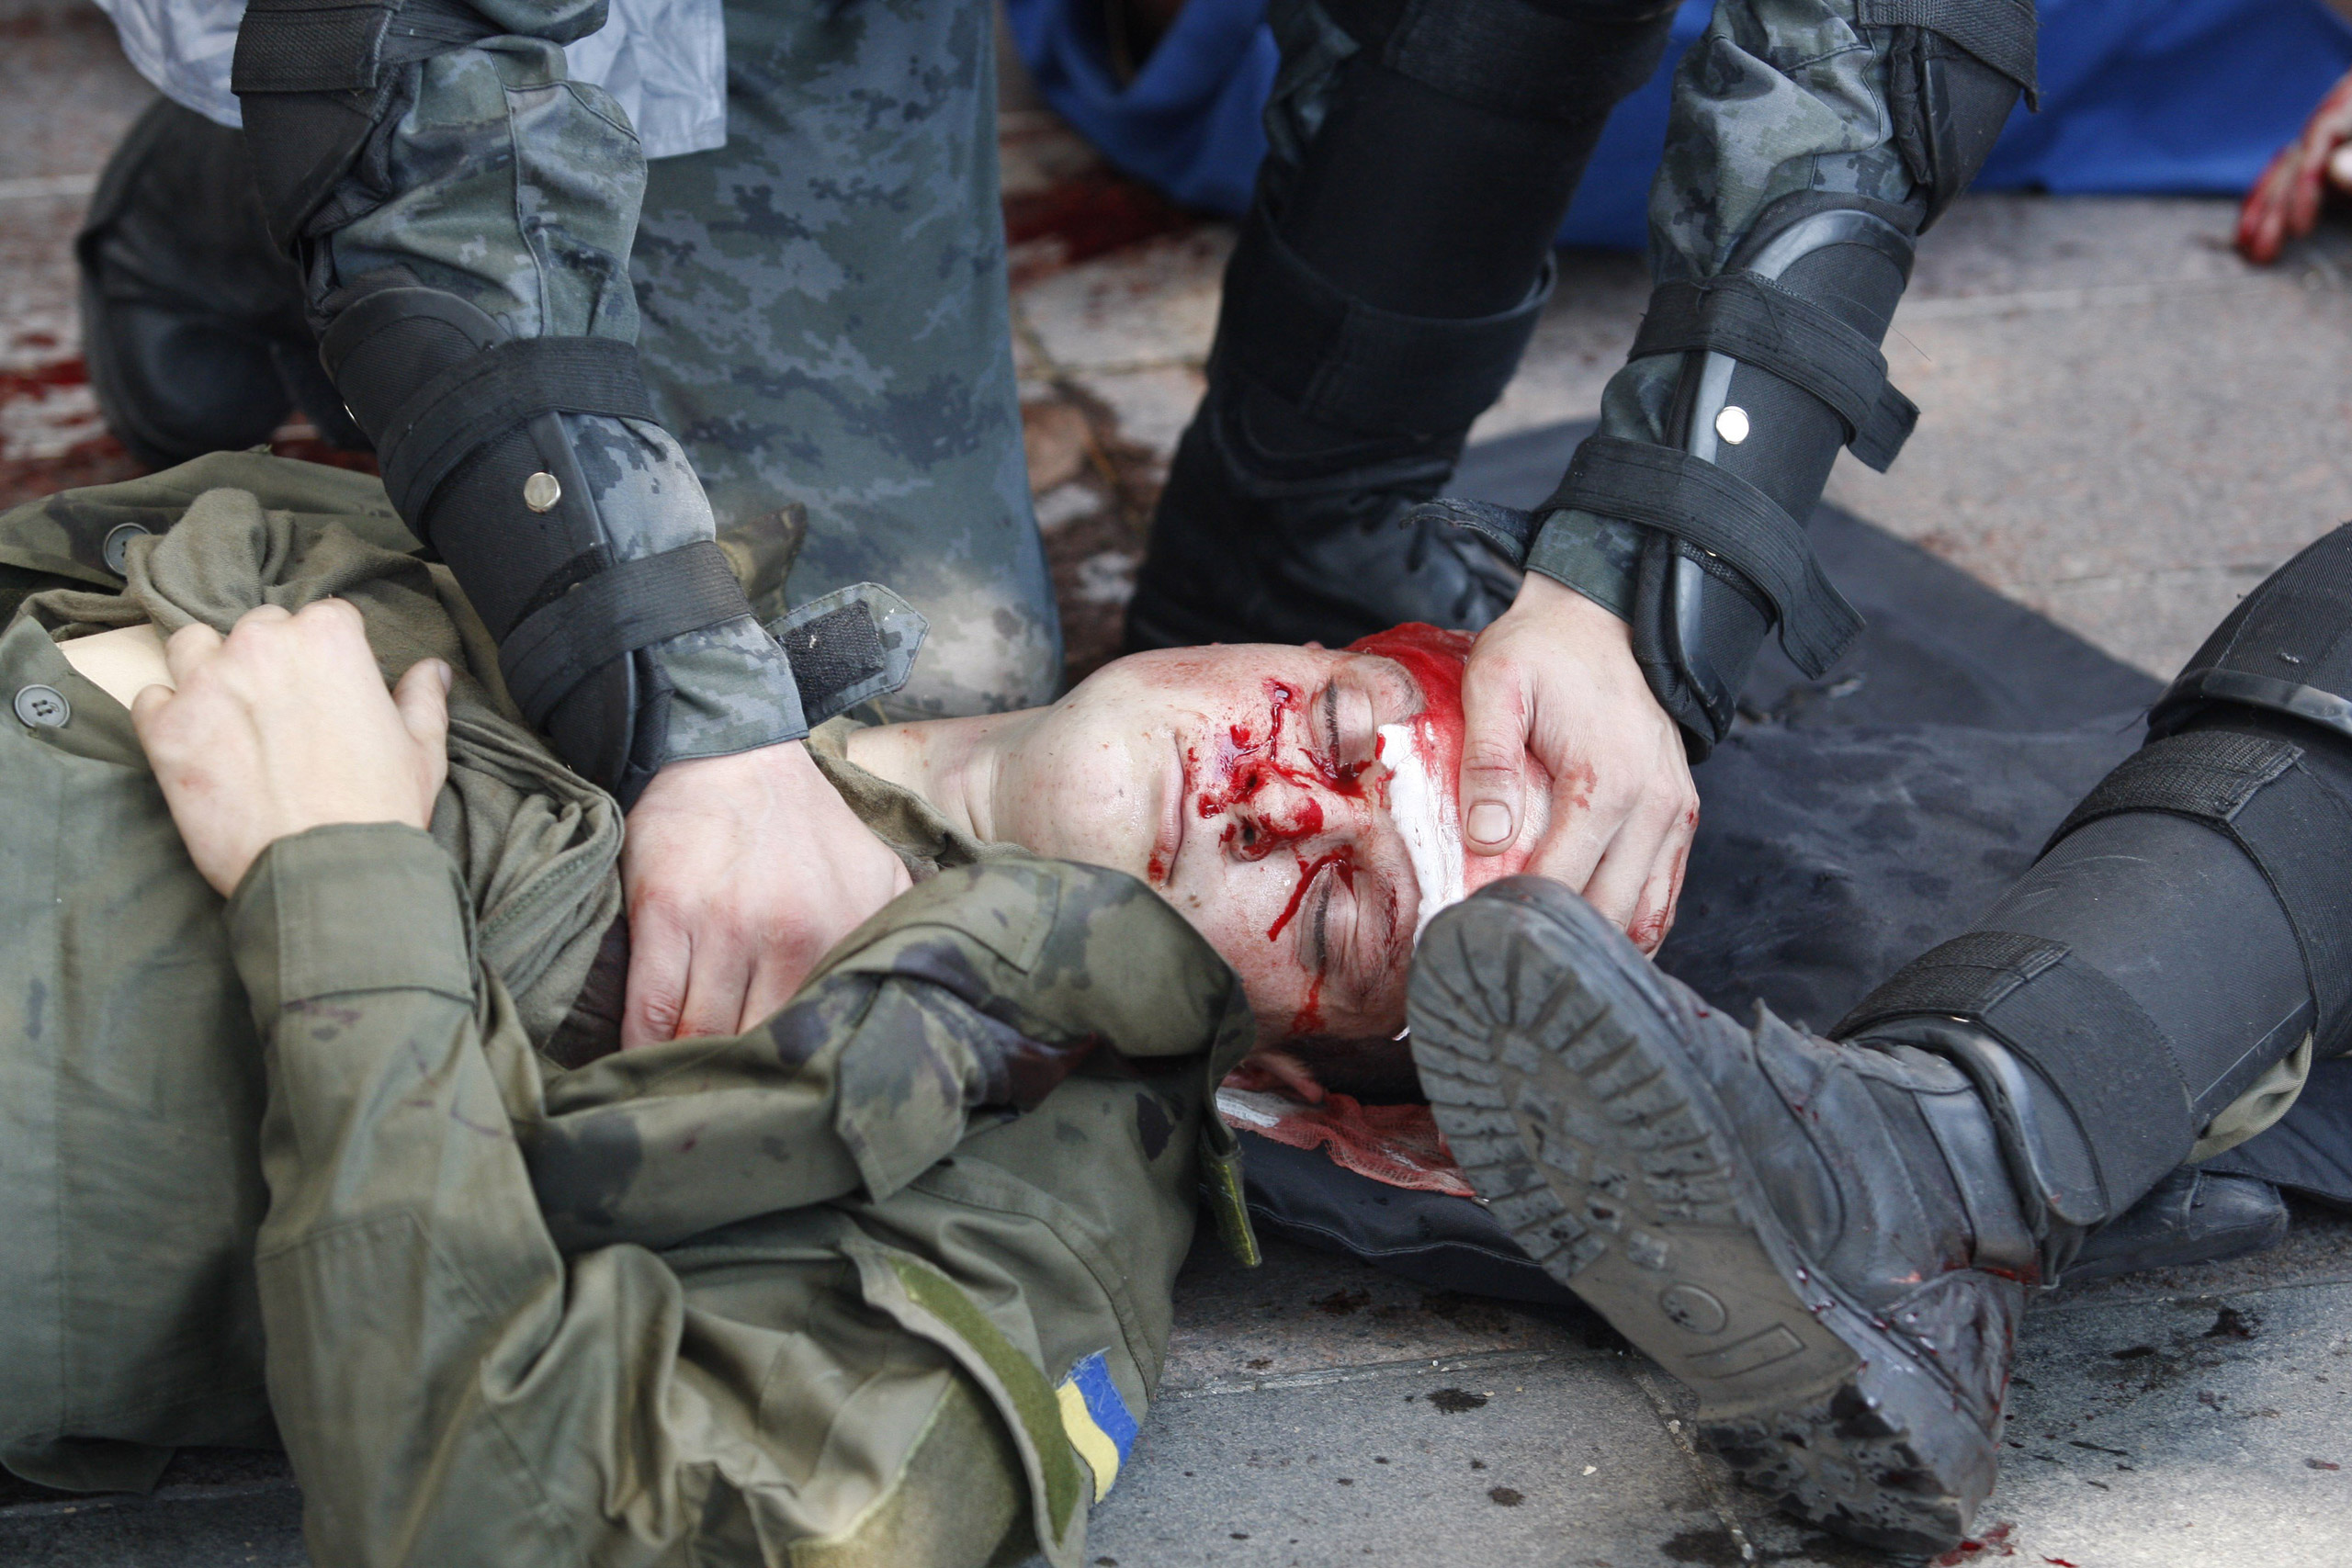 Police officers help a wounded colleague during clashes with protesters in front of the parliament in Kiev, Ukraine, on Aug. 31, 2015.